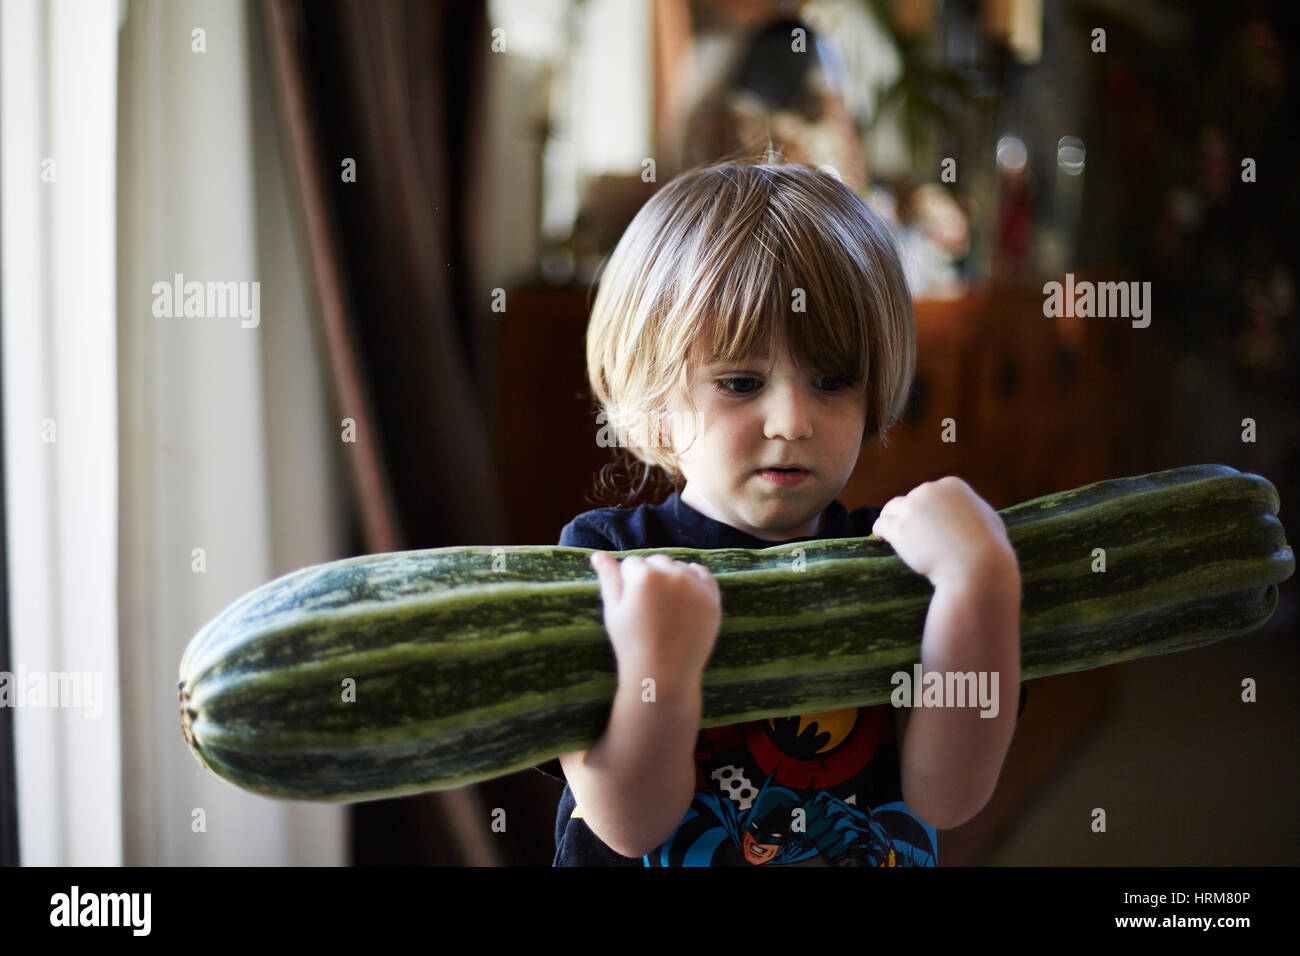 Young boy with large courgette - Stock Image